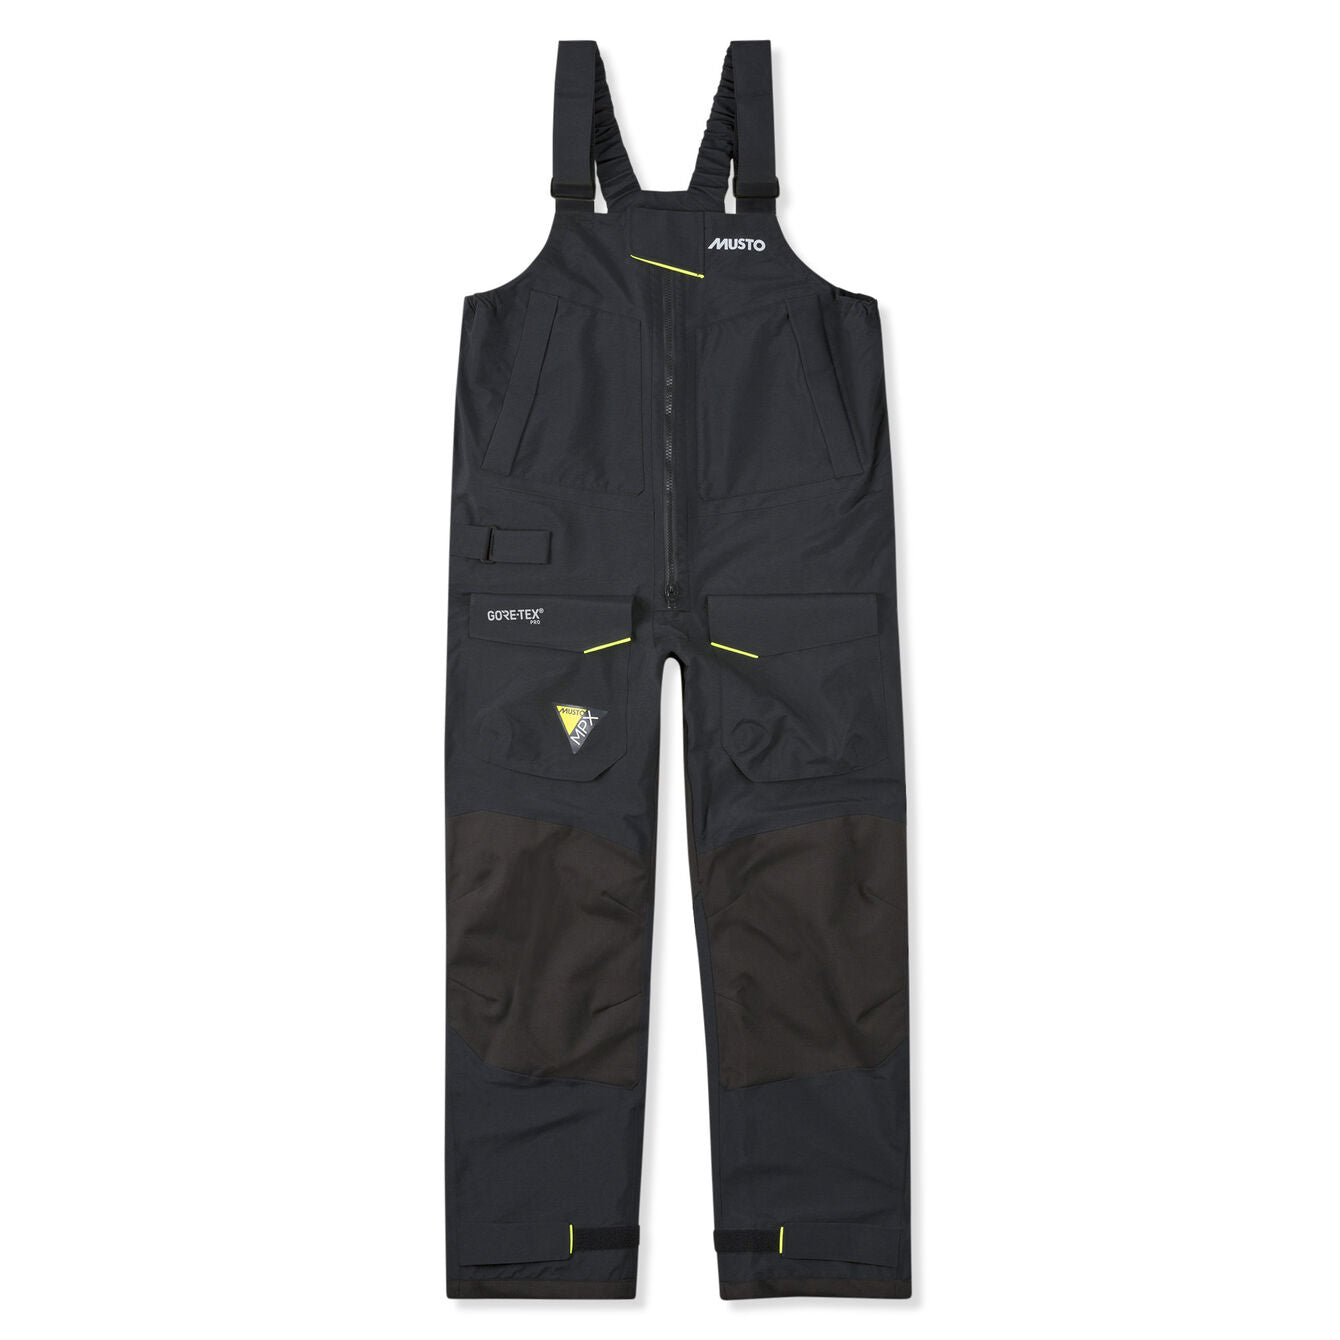 MPX GORE-TEX® PRO OFFSHORE TROUSERS